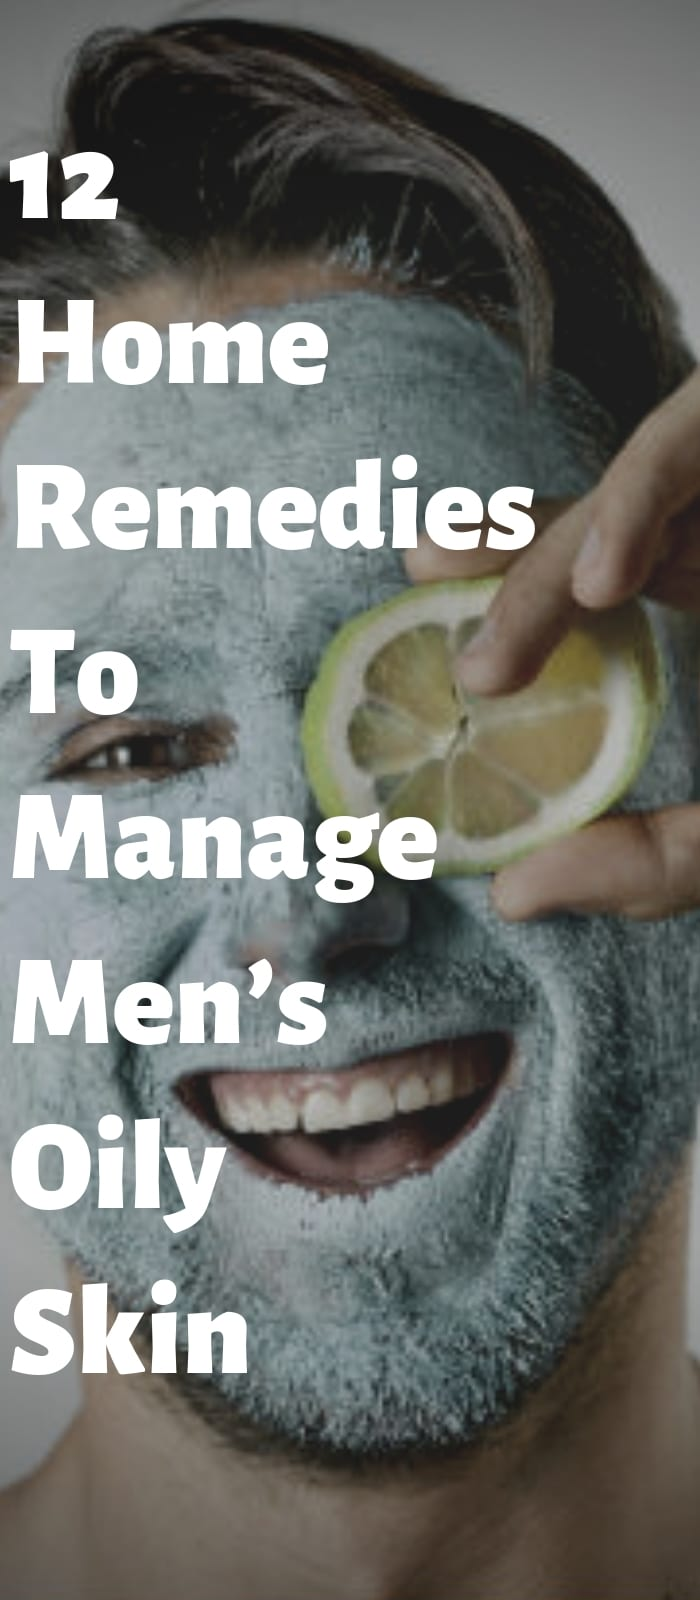 12 Home Remedies To Manage Men's Oily Skin